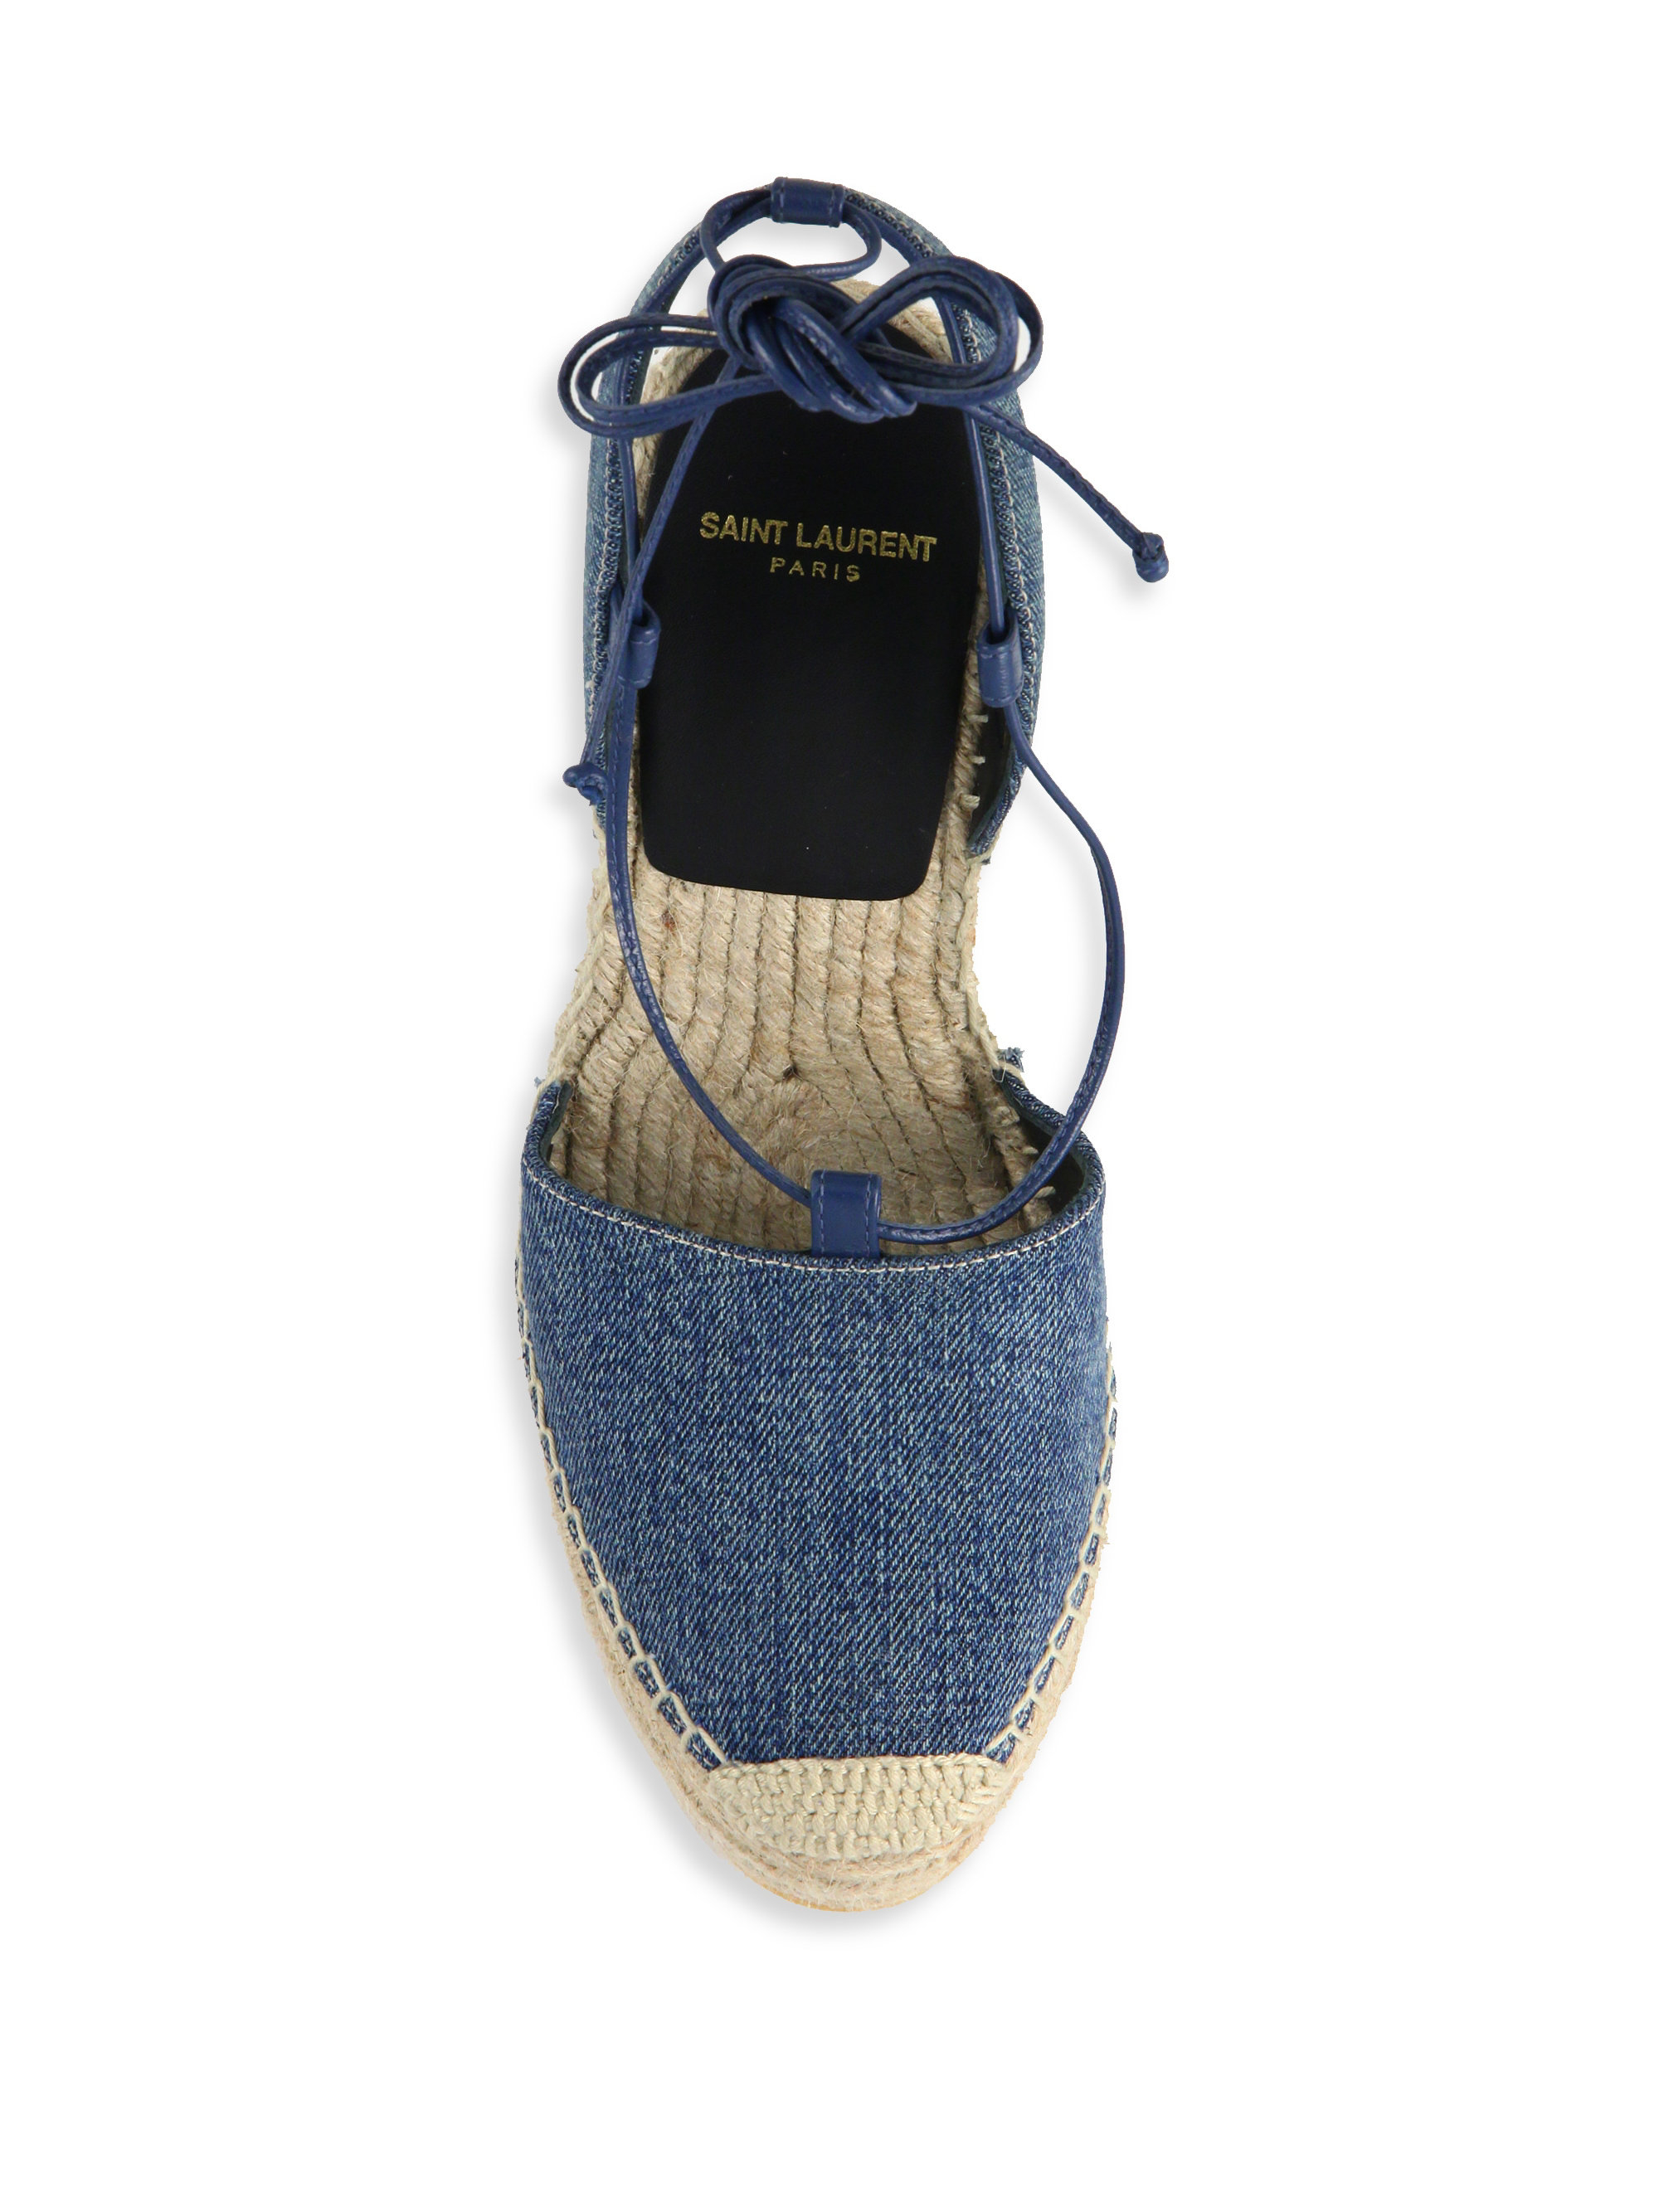 Lyst Saint Laurent Denim Espadrille Wedge Sandals In Blue